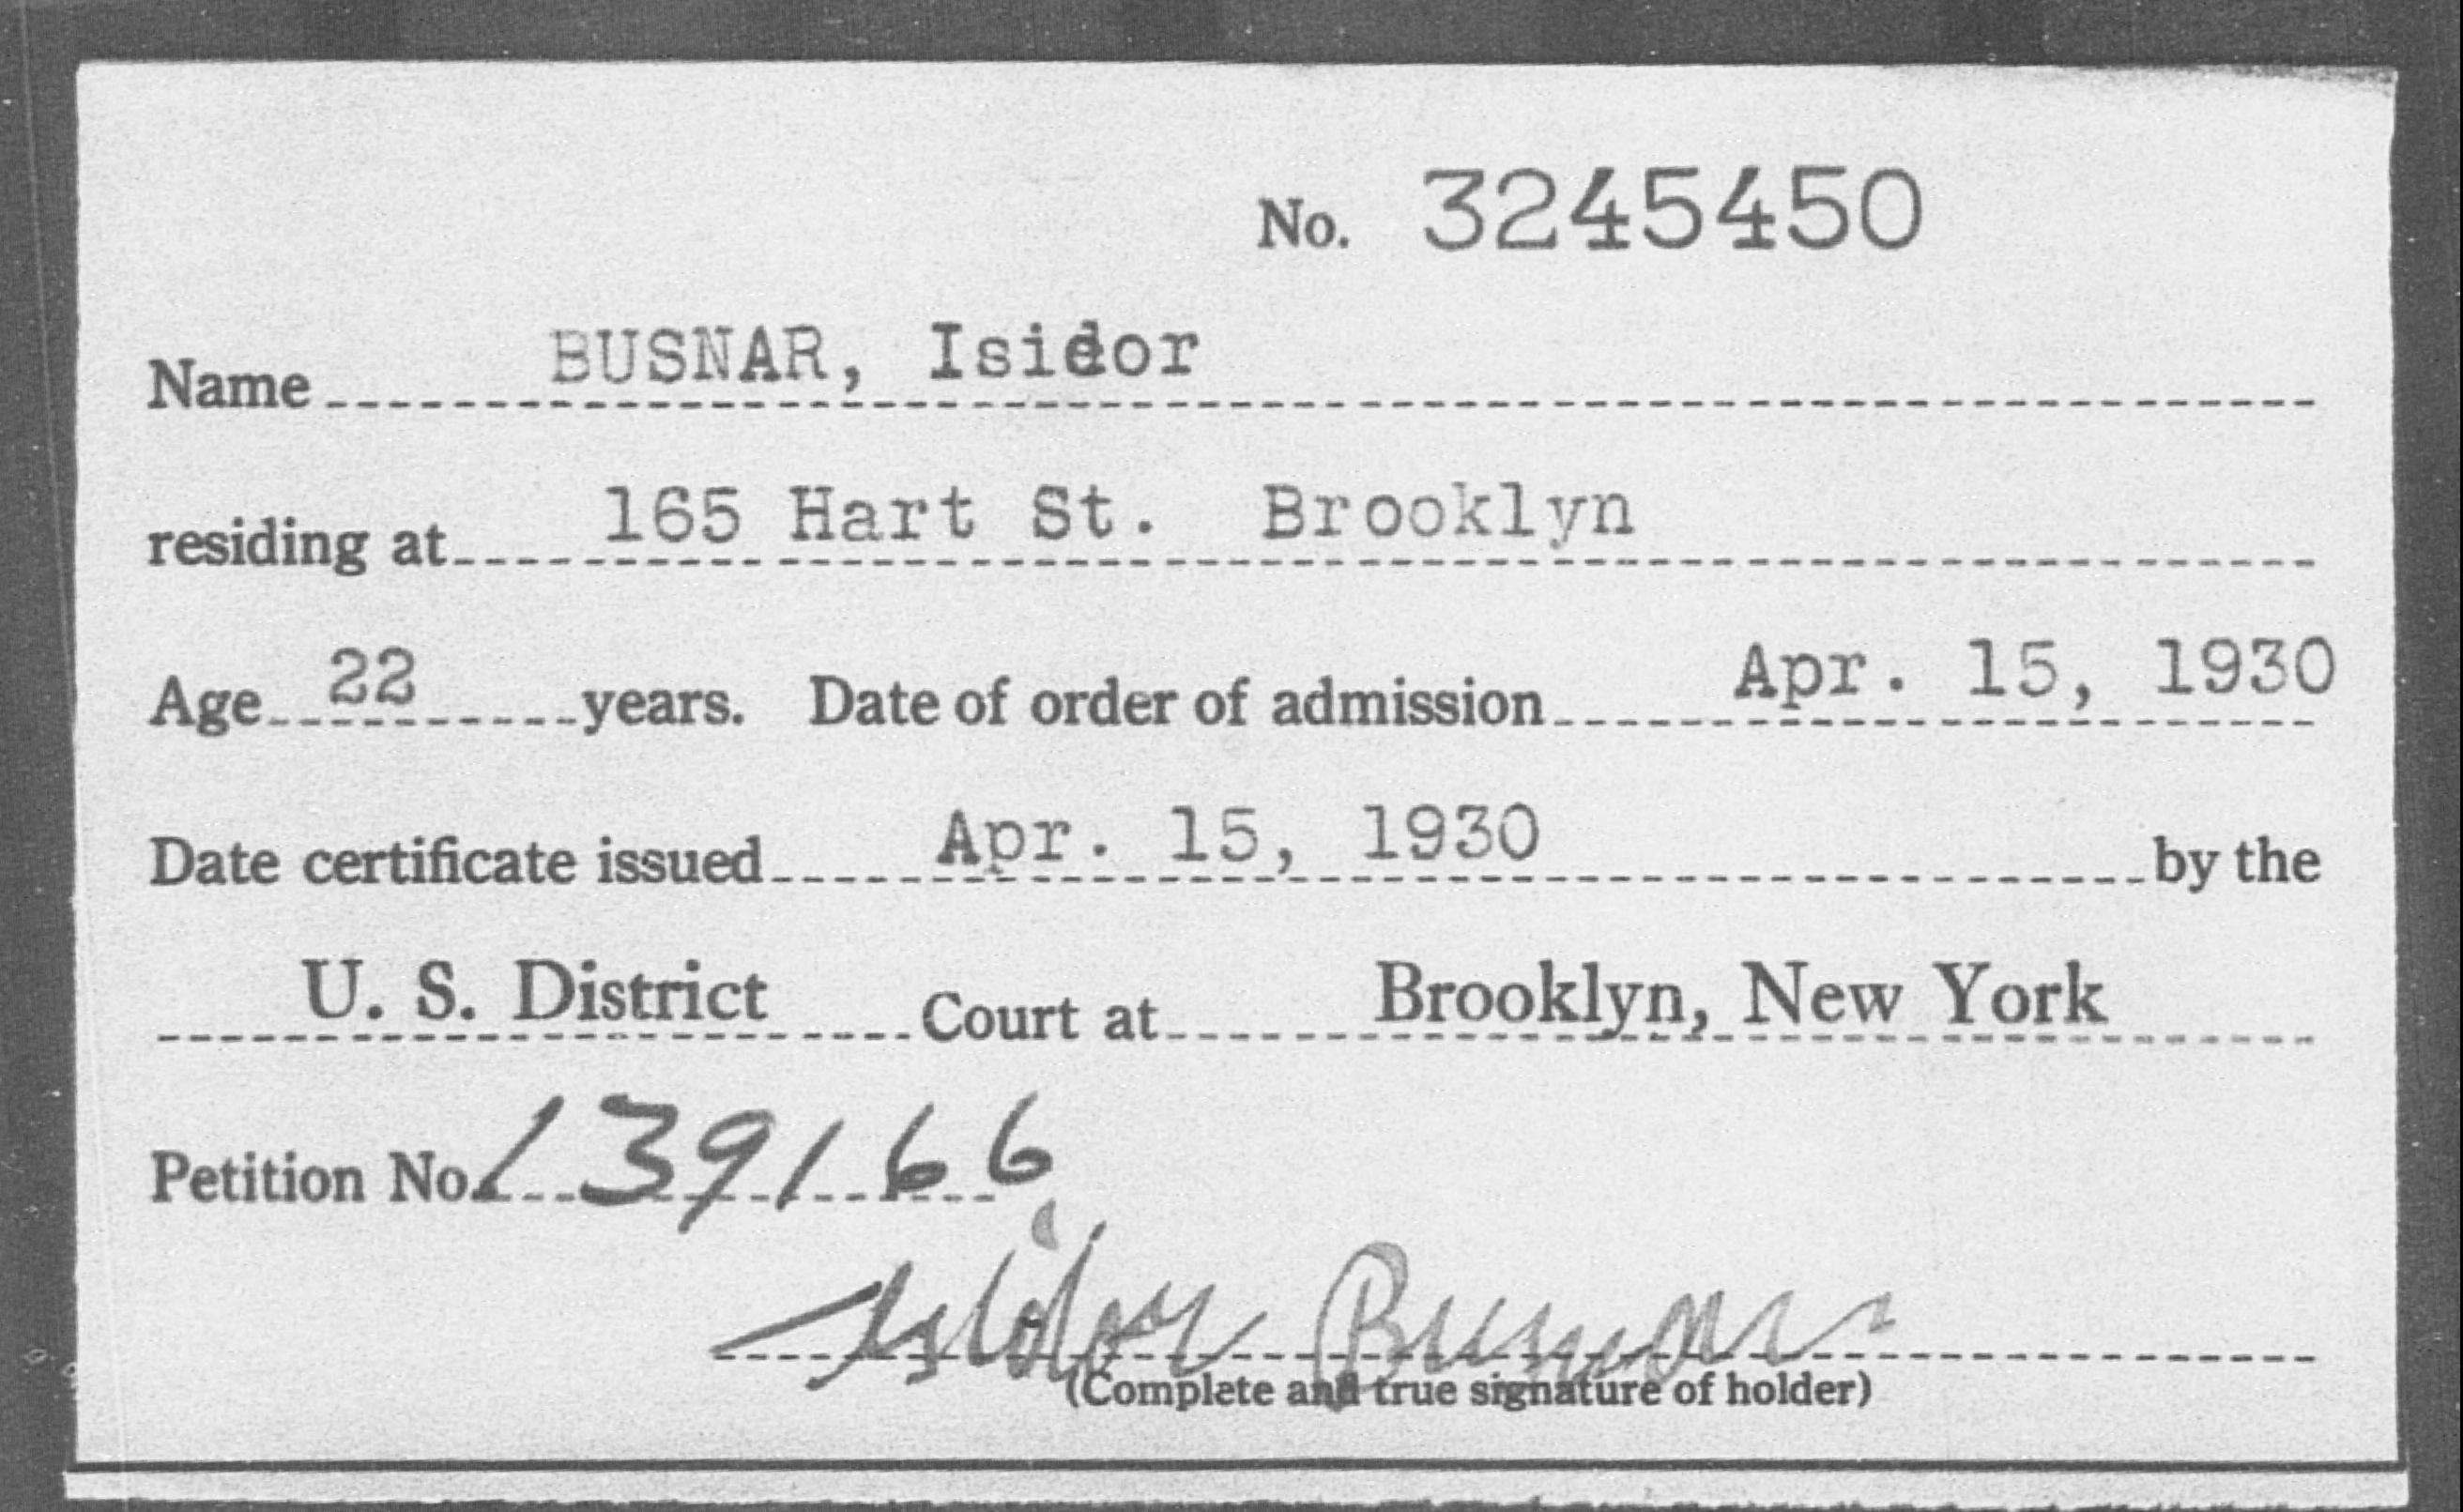 BUSNAR, Isidor - Born: [BLANK], Naturalized: 1930